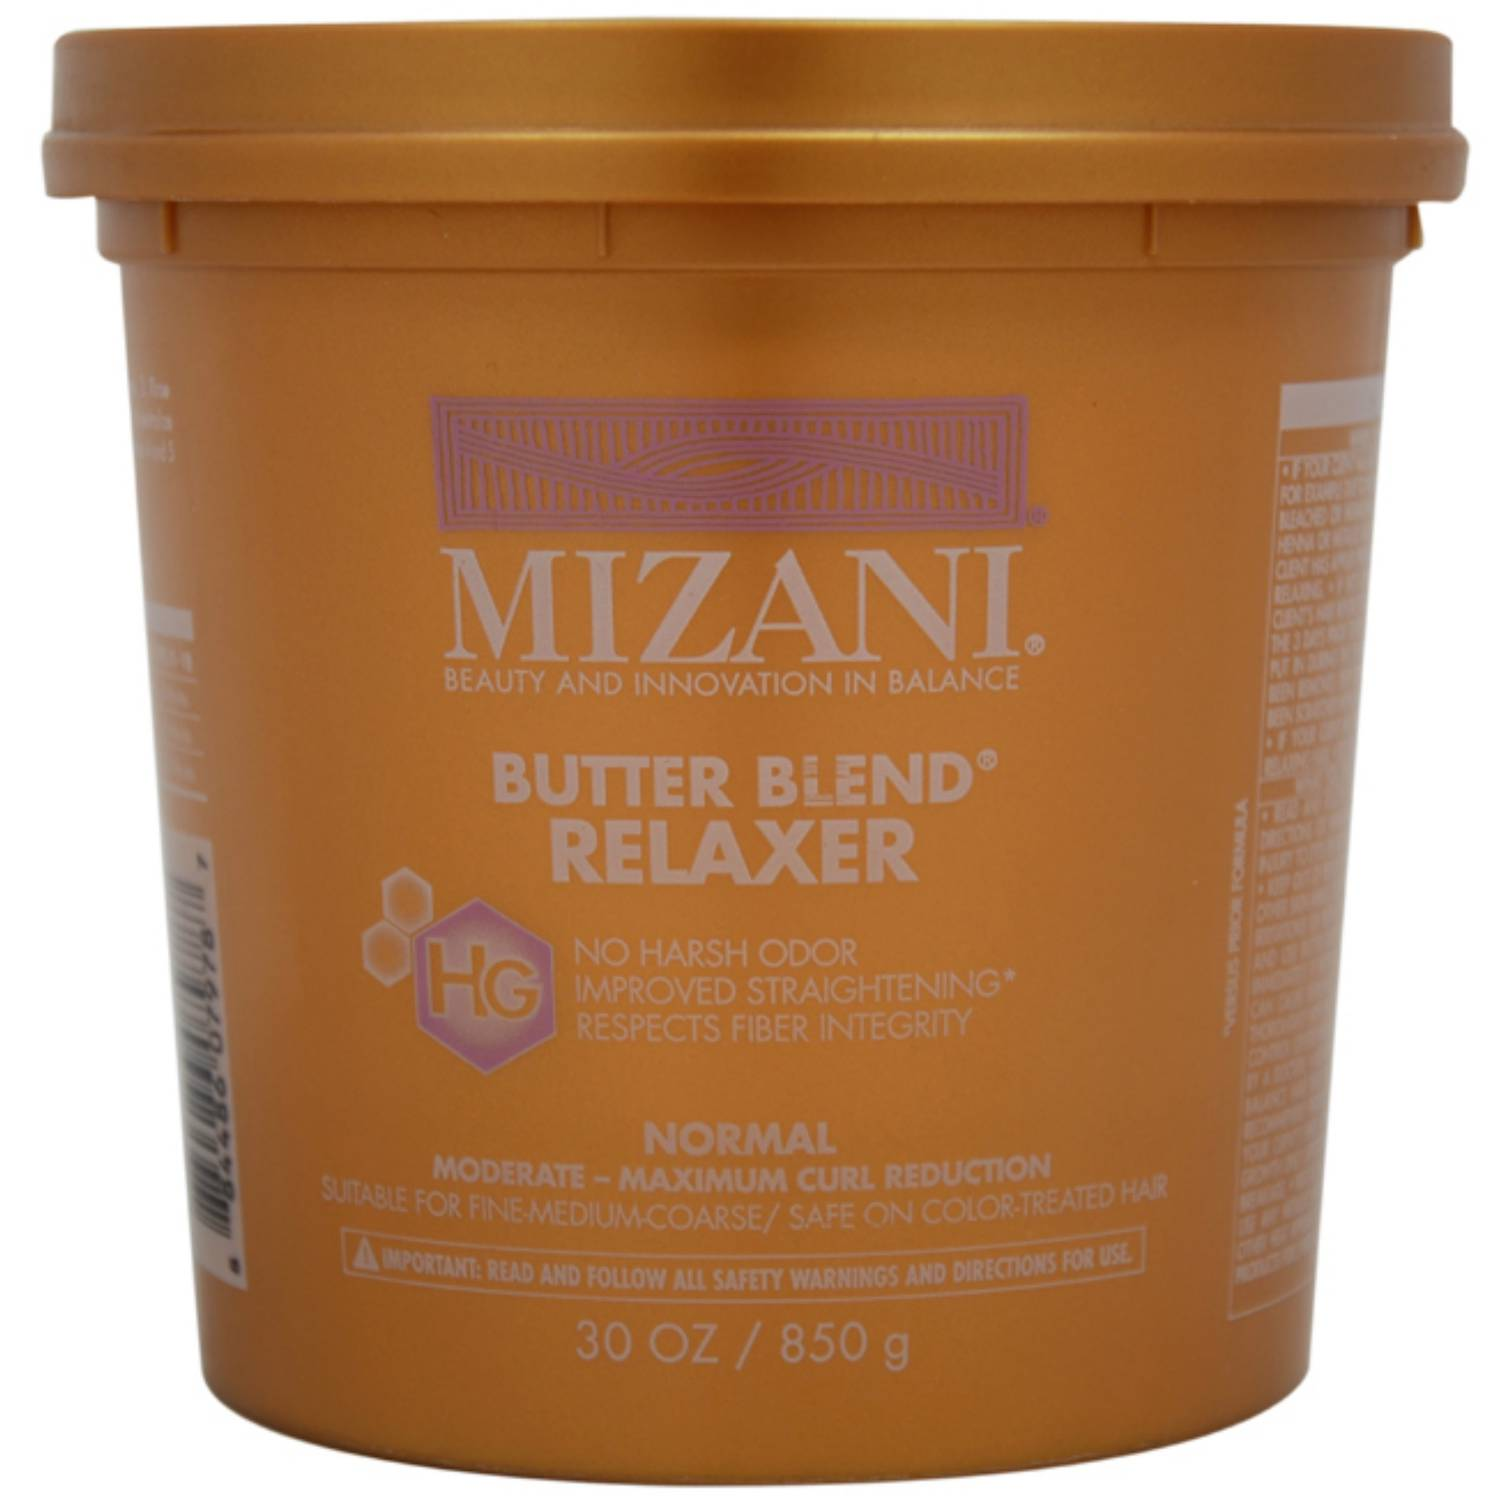 Mizani Butter Blend Relaxer Normal, 30 oz